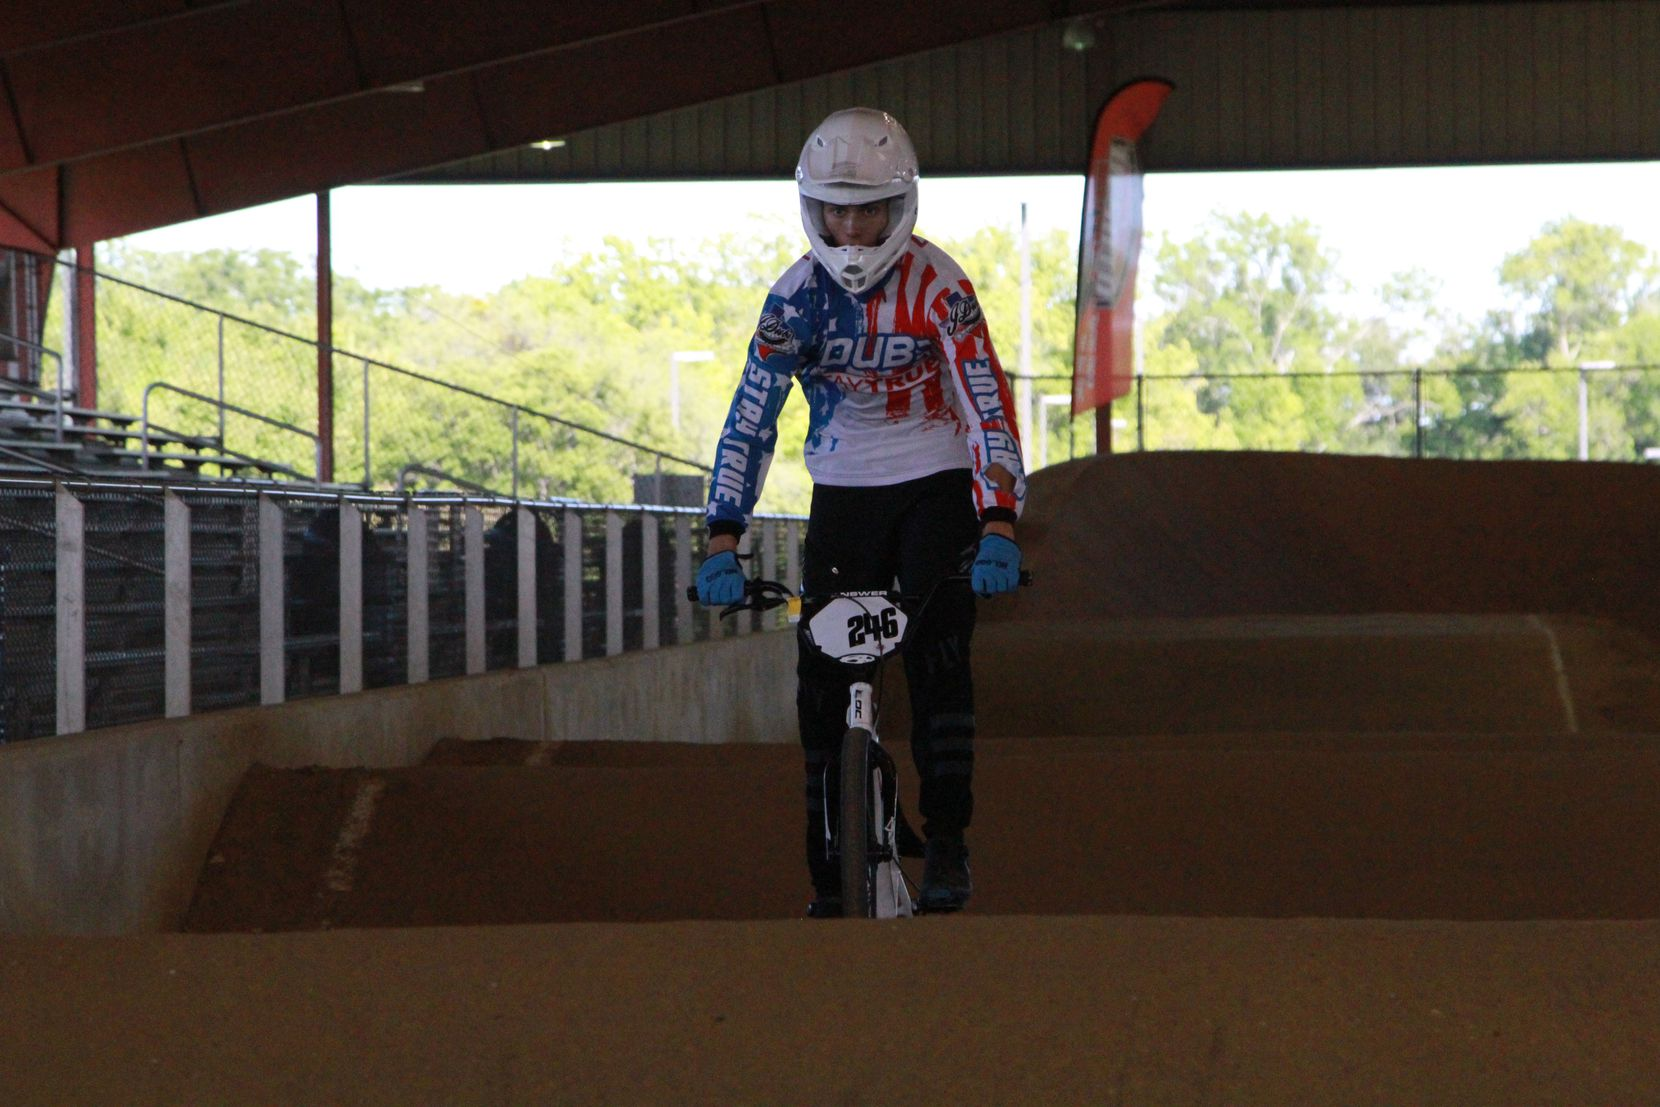 BMX rider Jakobe Irvin puts is caught mid action putting on a show during a demo at DeSoto BMX.